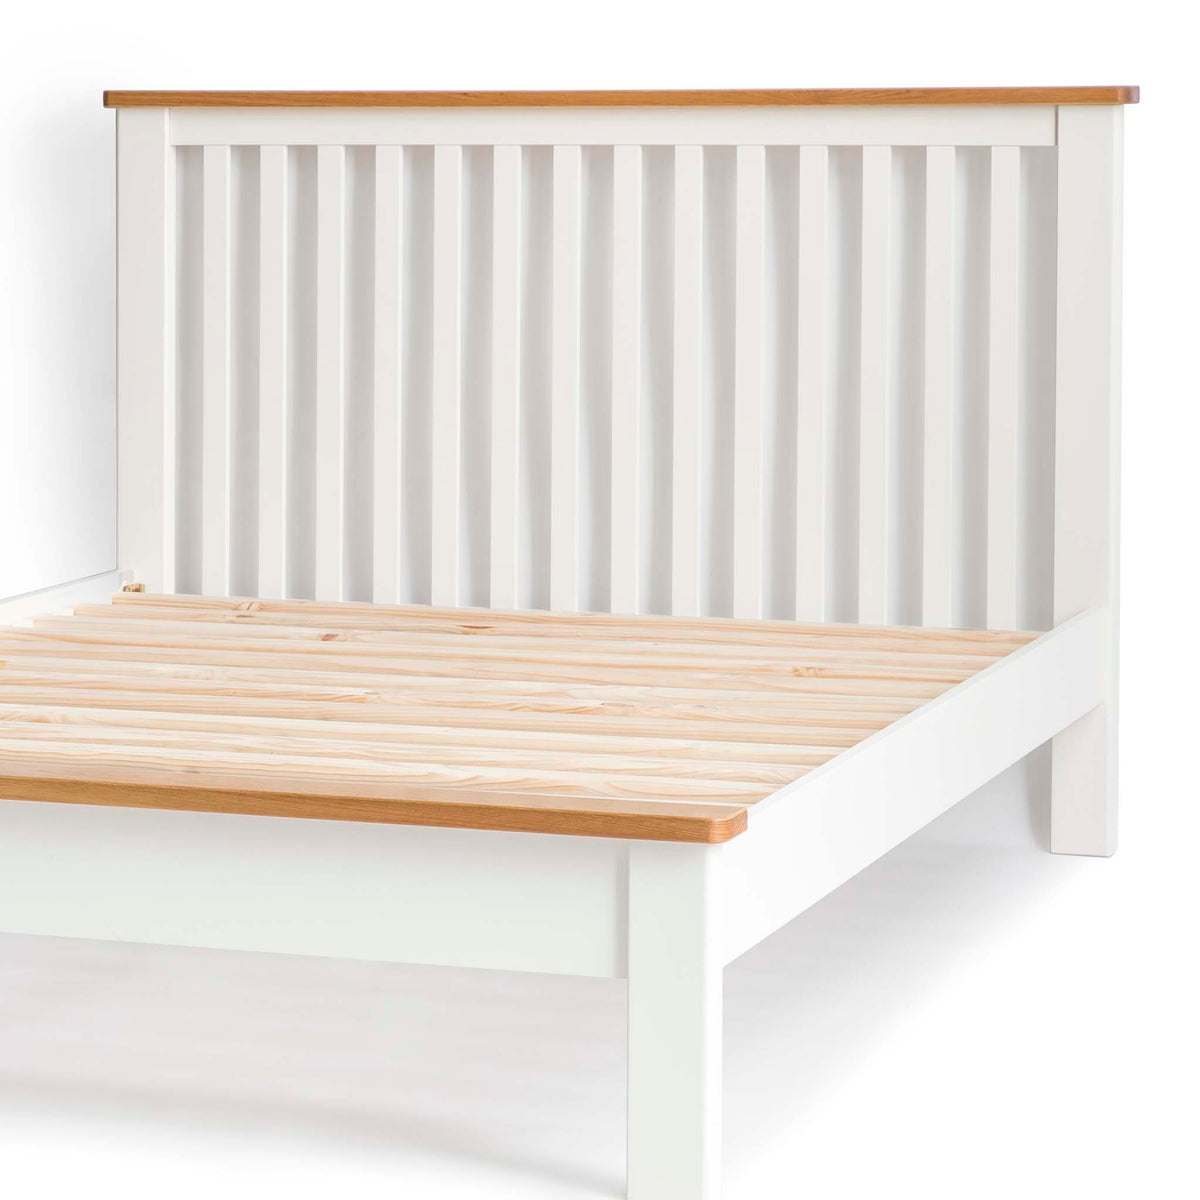 The Padstow White 5' King Size Bed Frame - Close Up of Bed Footer